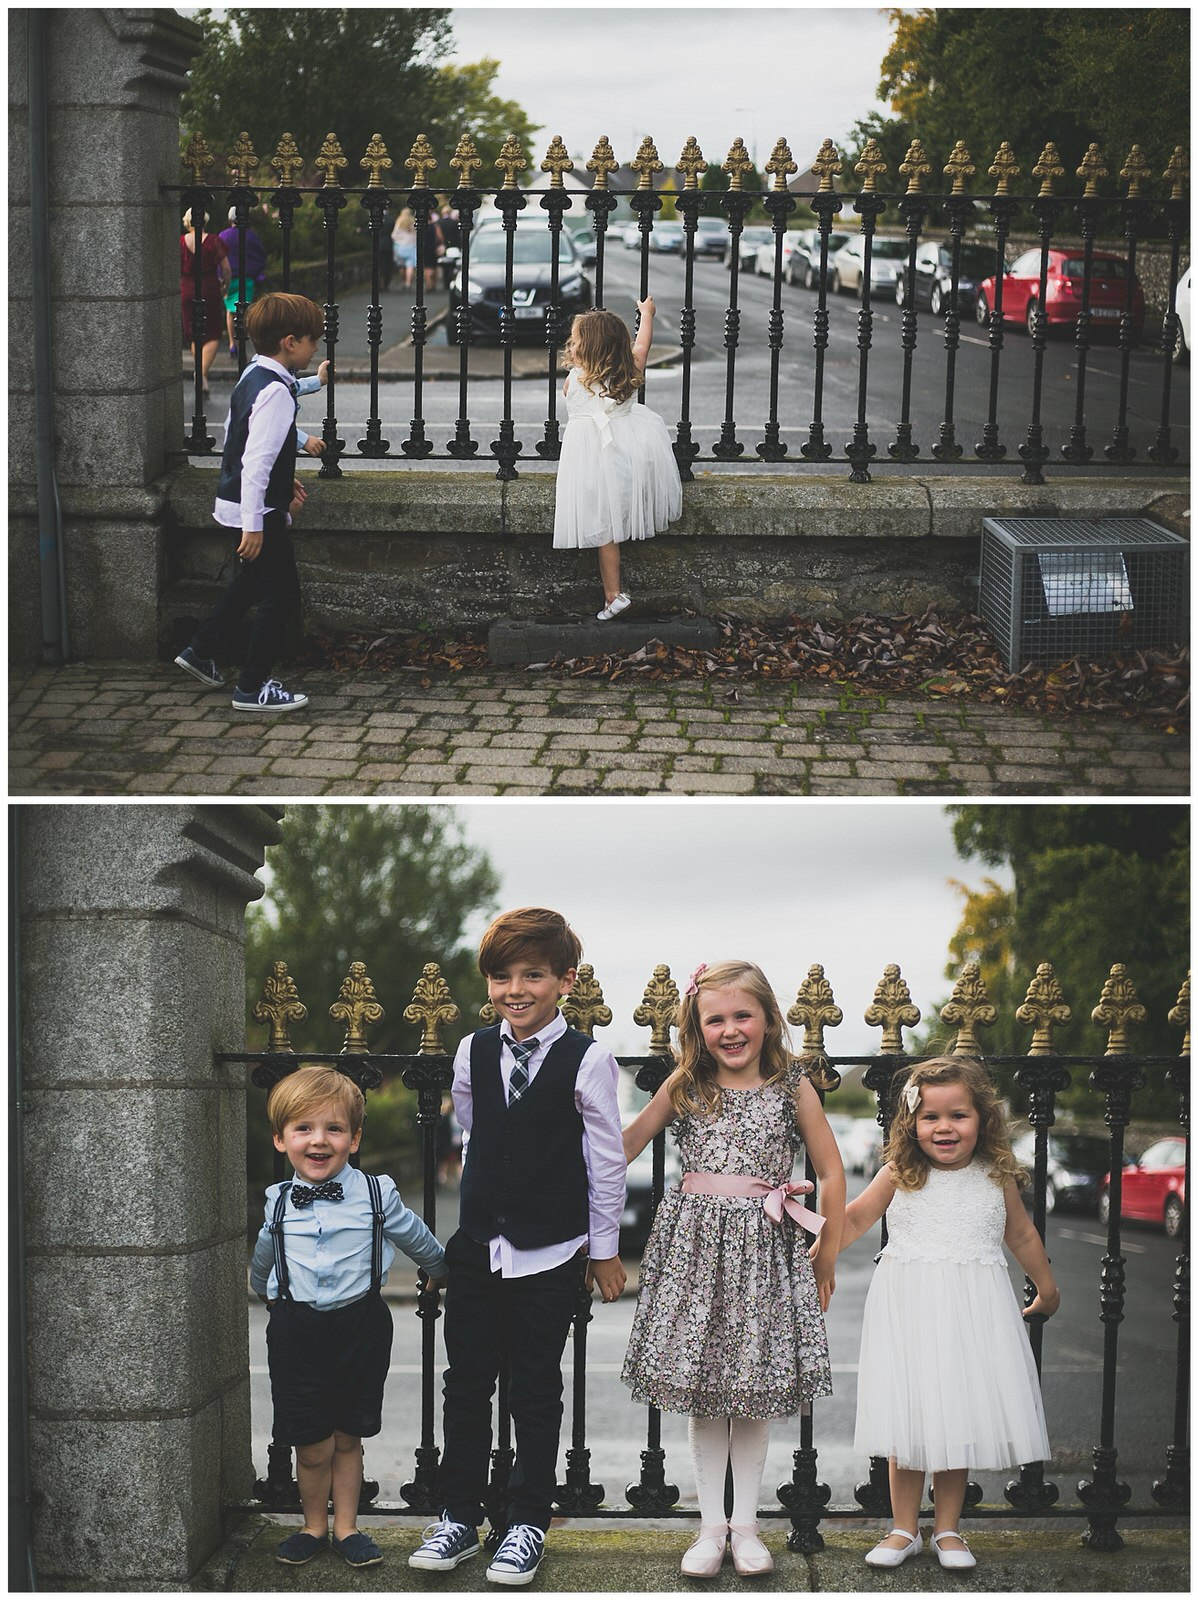 Cute shot of kids at a wedding